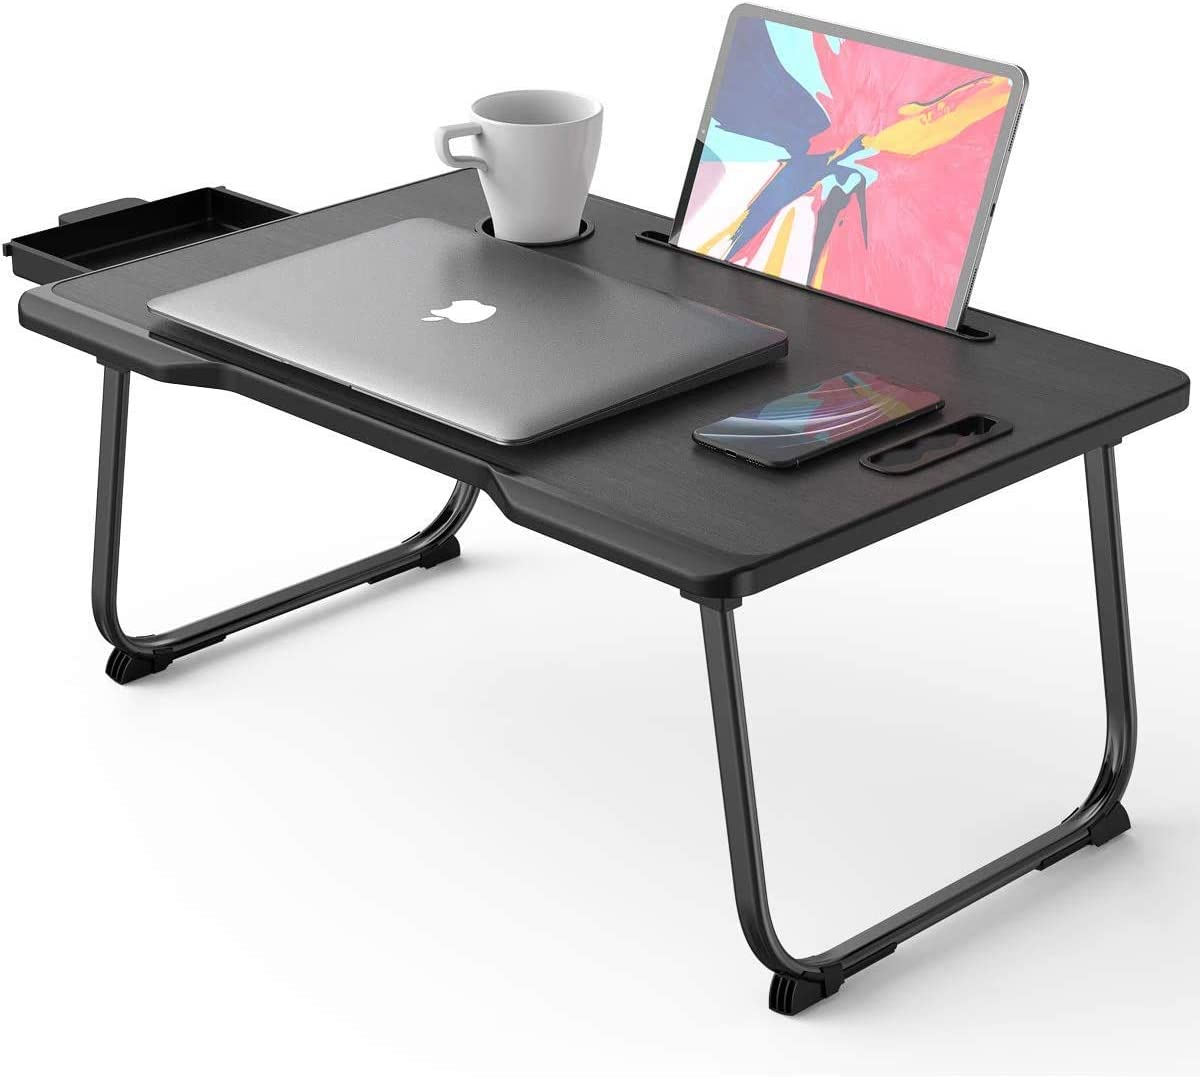 Laptop Desk with Handle, Portable Laptop Desk Breakfast Tray Table with Foldable Legs &Strechable Drawer &Notebook Stand Reading Holder &Cup Slot for Bed/Sofa/Couch/Floor